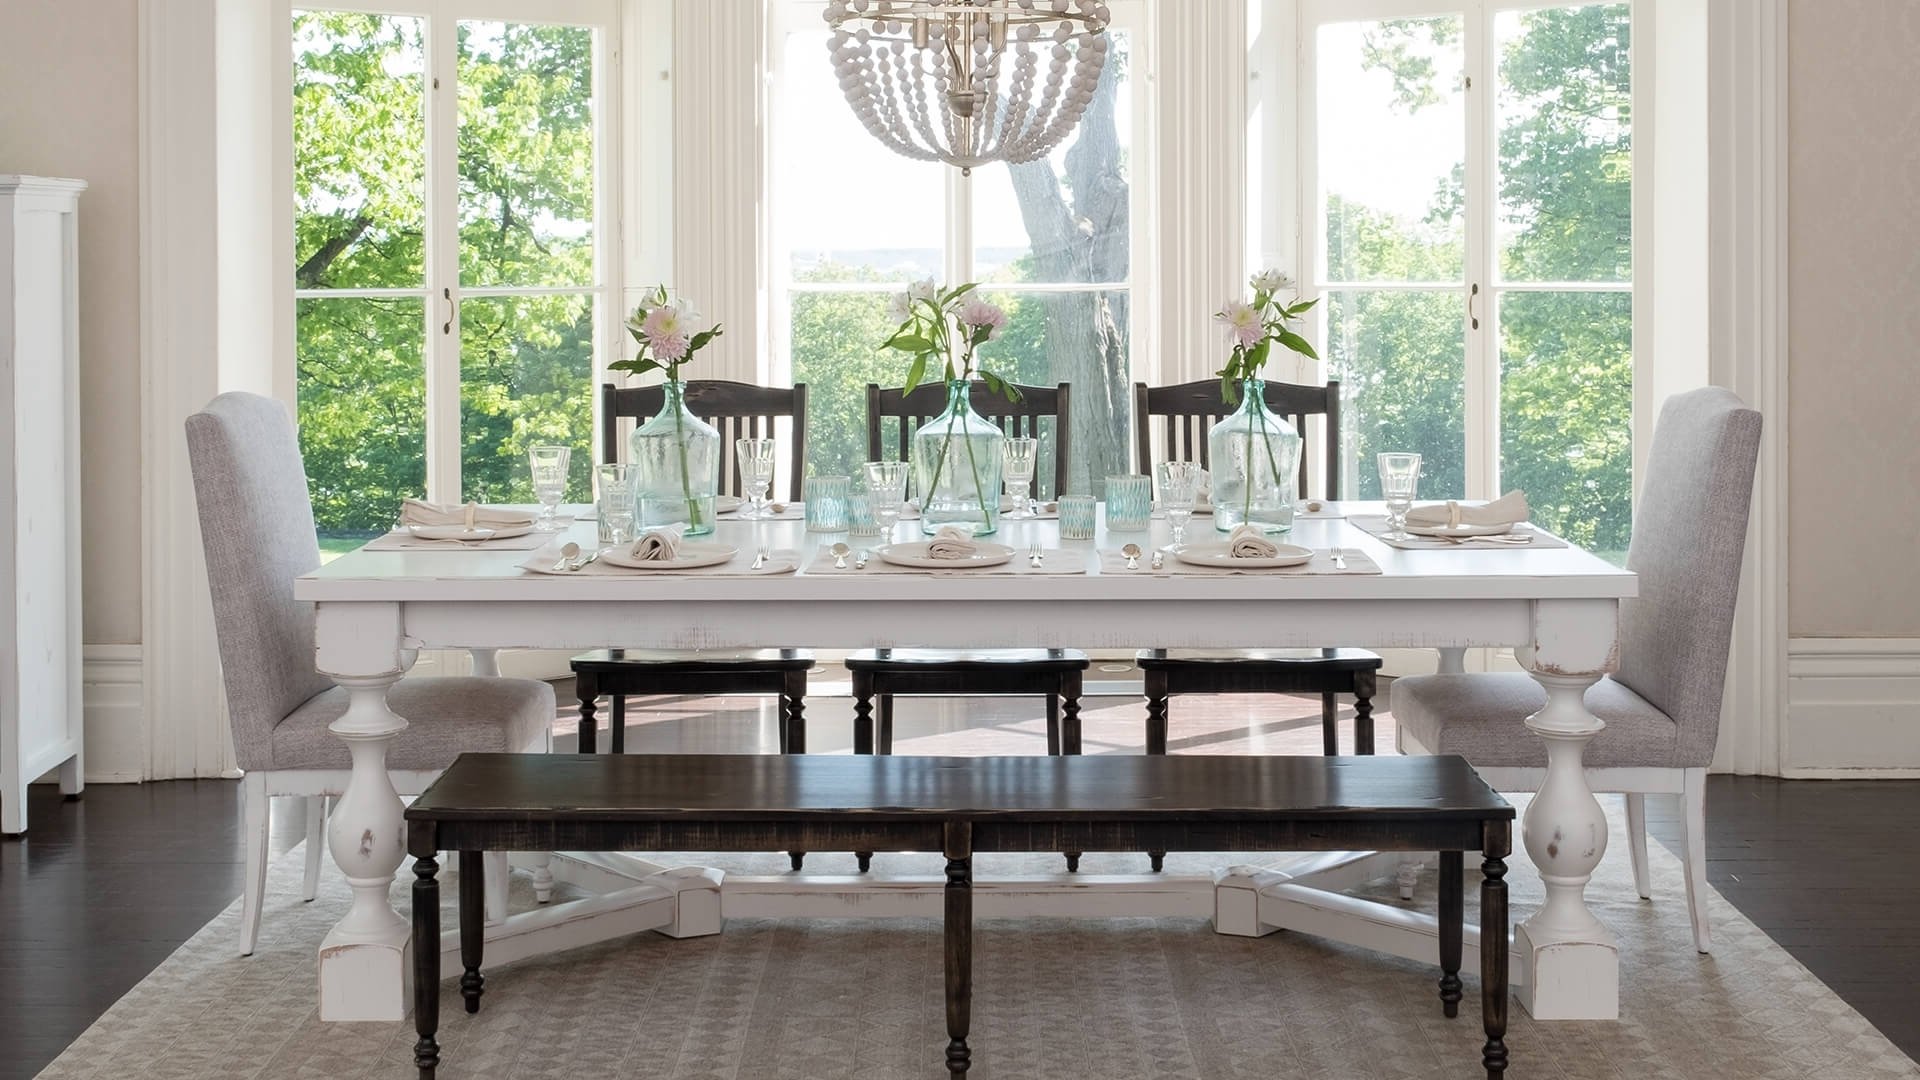 Preferred Dining Room Tables Regarding Wood Furniture For Kitchen, Living And Dining Room – Canadel (View 23 of 25)